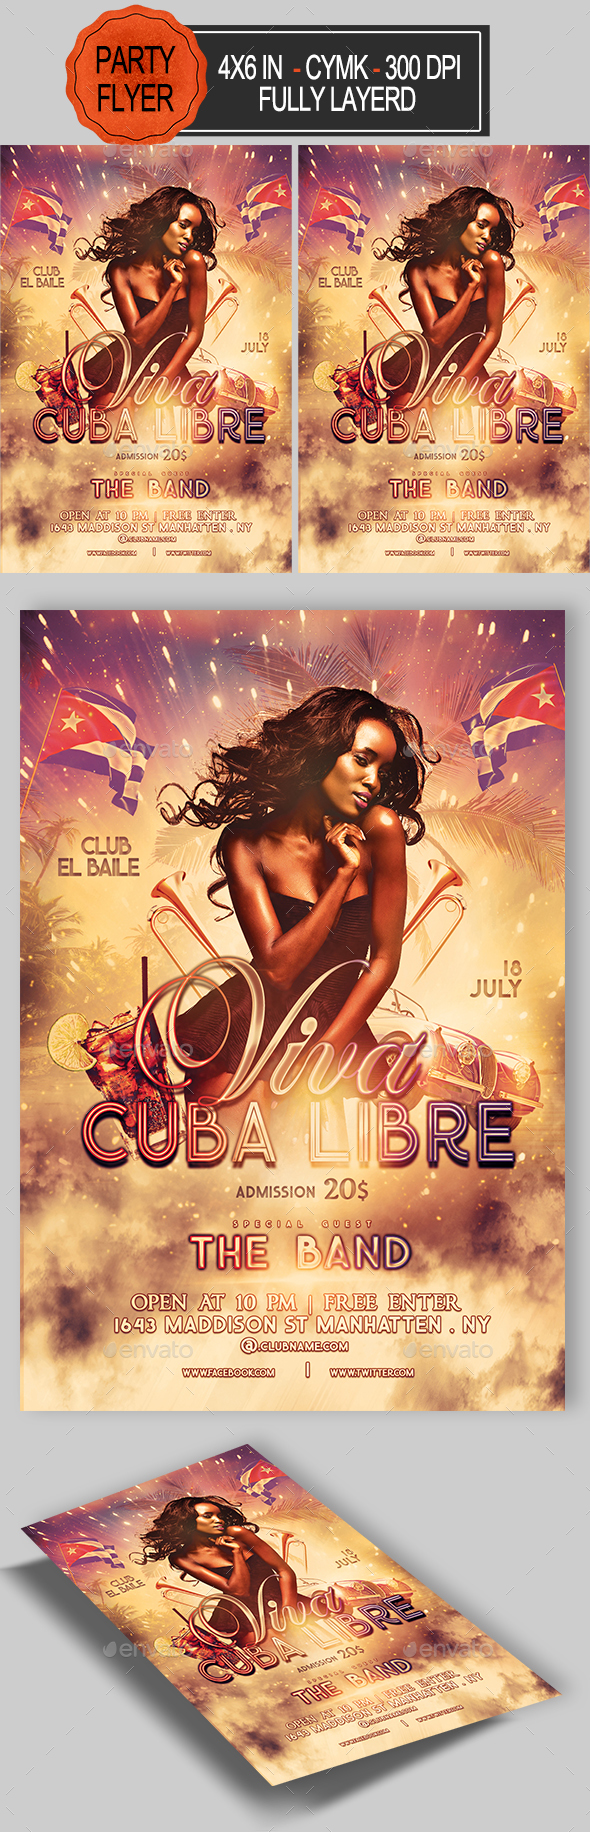 Viva Cuba Libre Flyer - Clubs & Parties Events